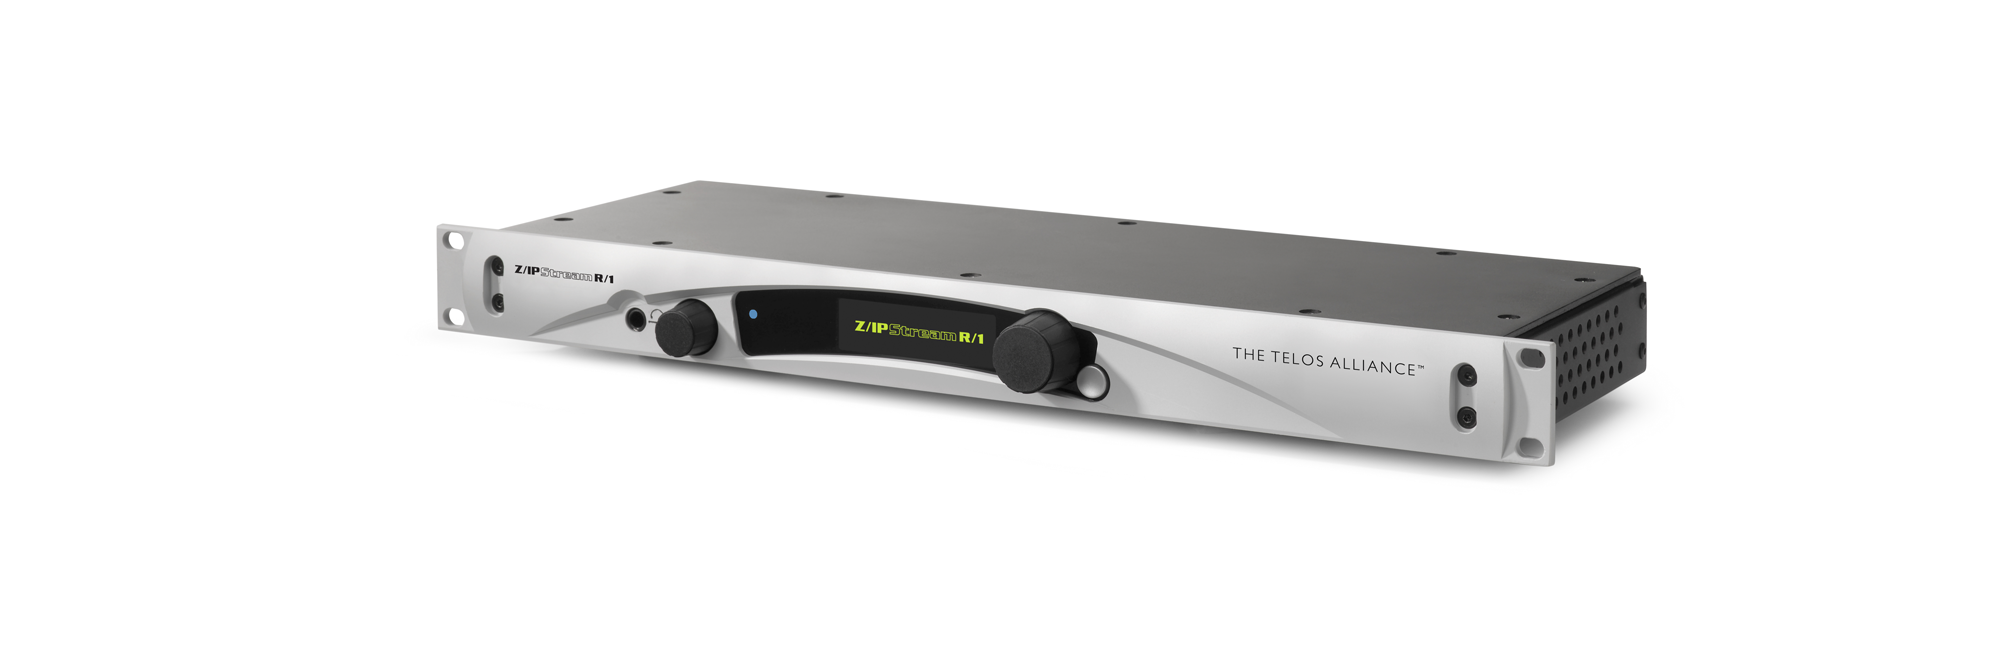 Z/IPStream R/1 Audio Processor/Streaming Encoder